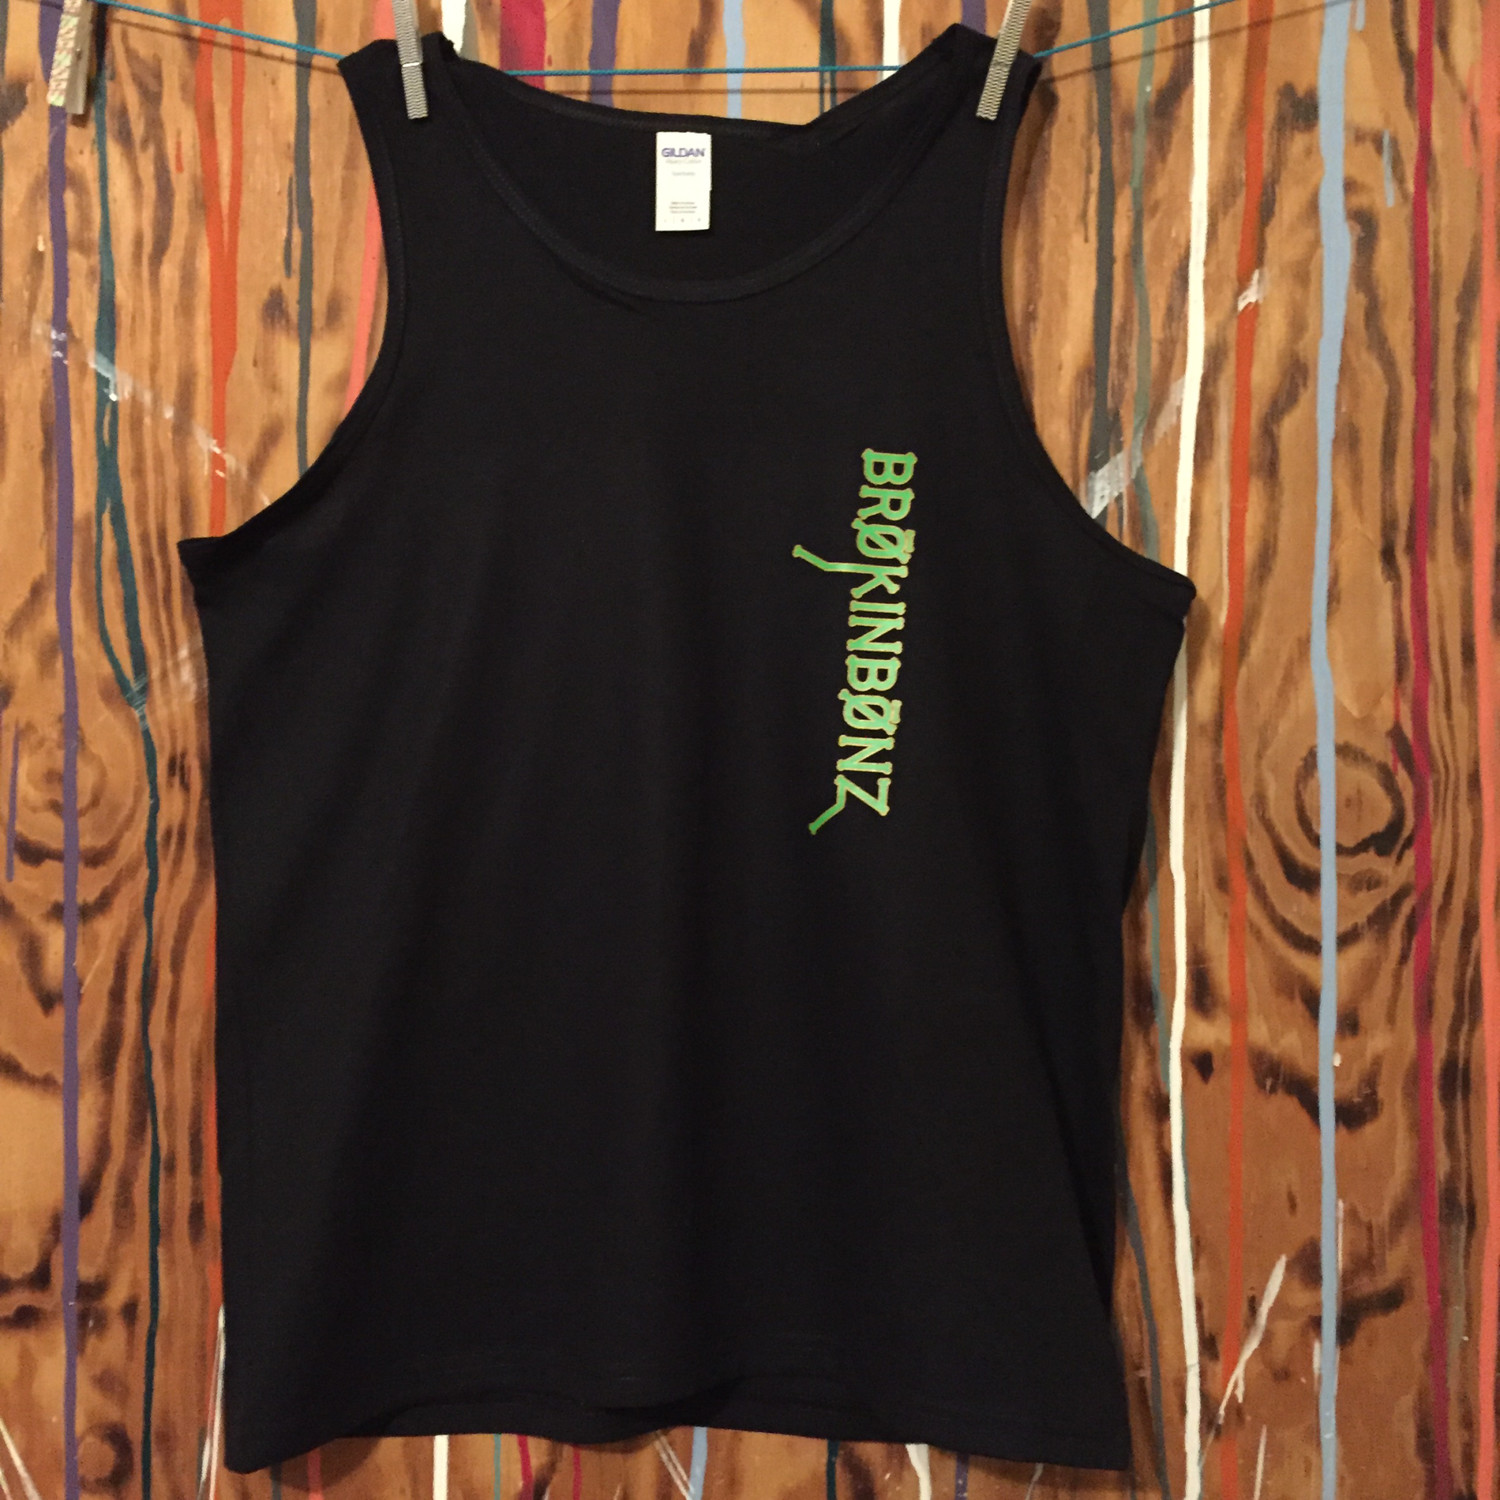 ORIGINAL BRØKINBØNZ Men's Tank Top...Two design color choices available